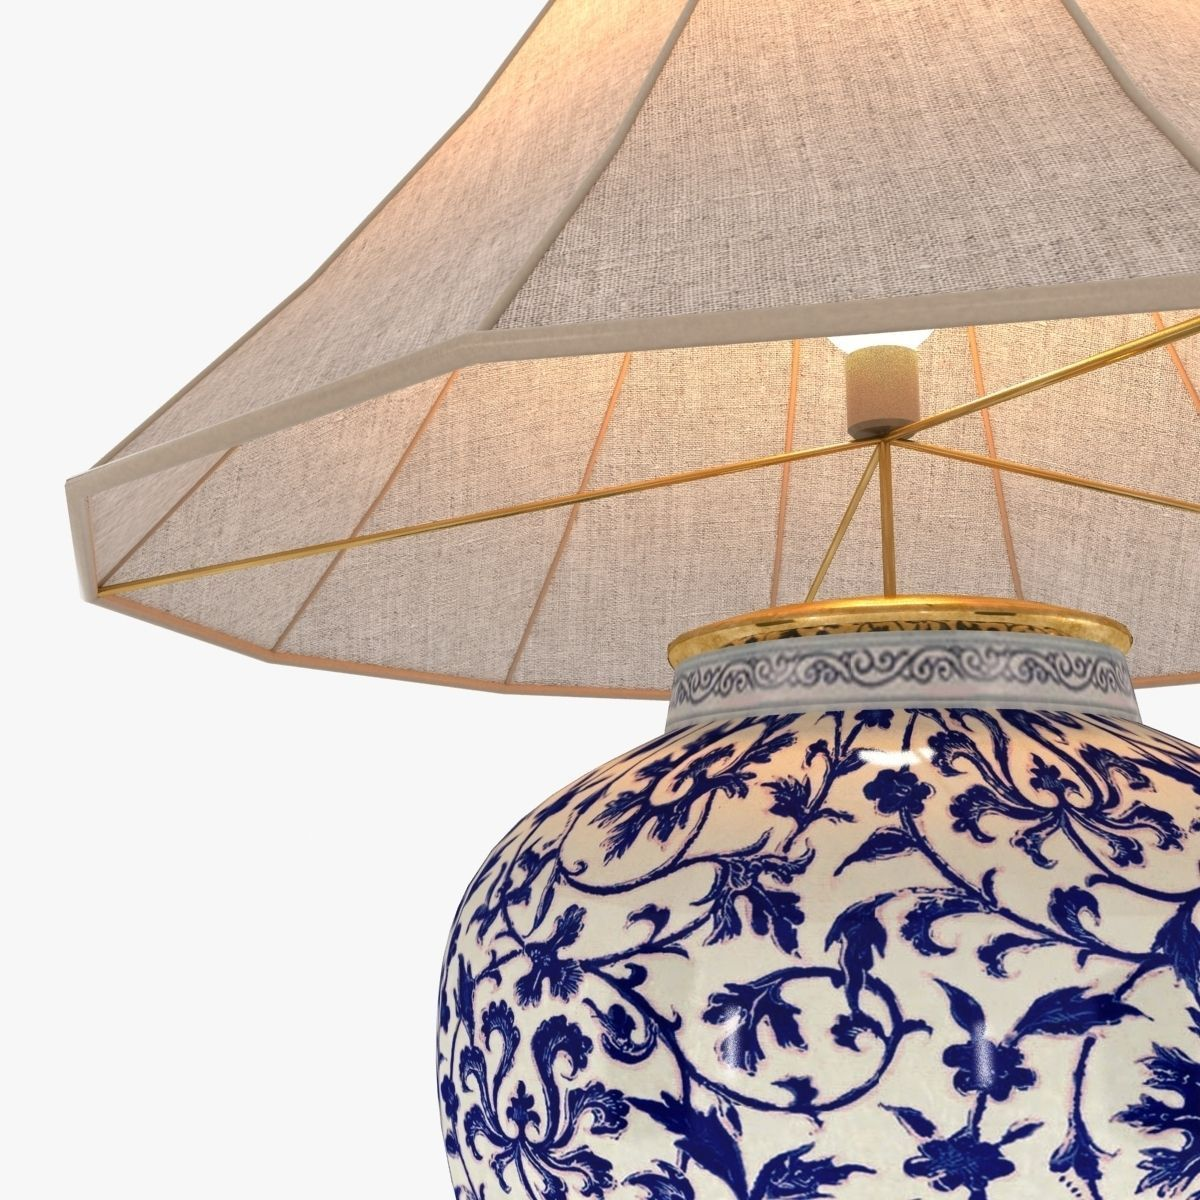 ... Ralph Lauren Marlena Large Table Lamp In Blue And White 3d Model Max  Obj 3ds Fbx ...